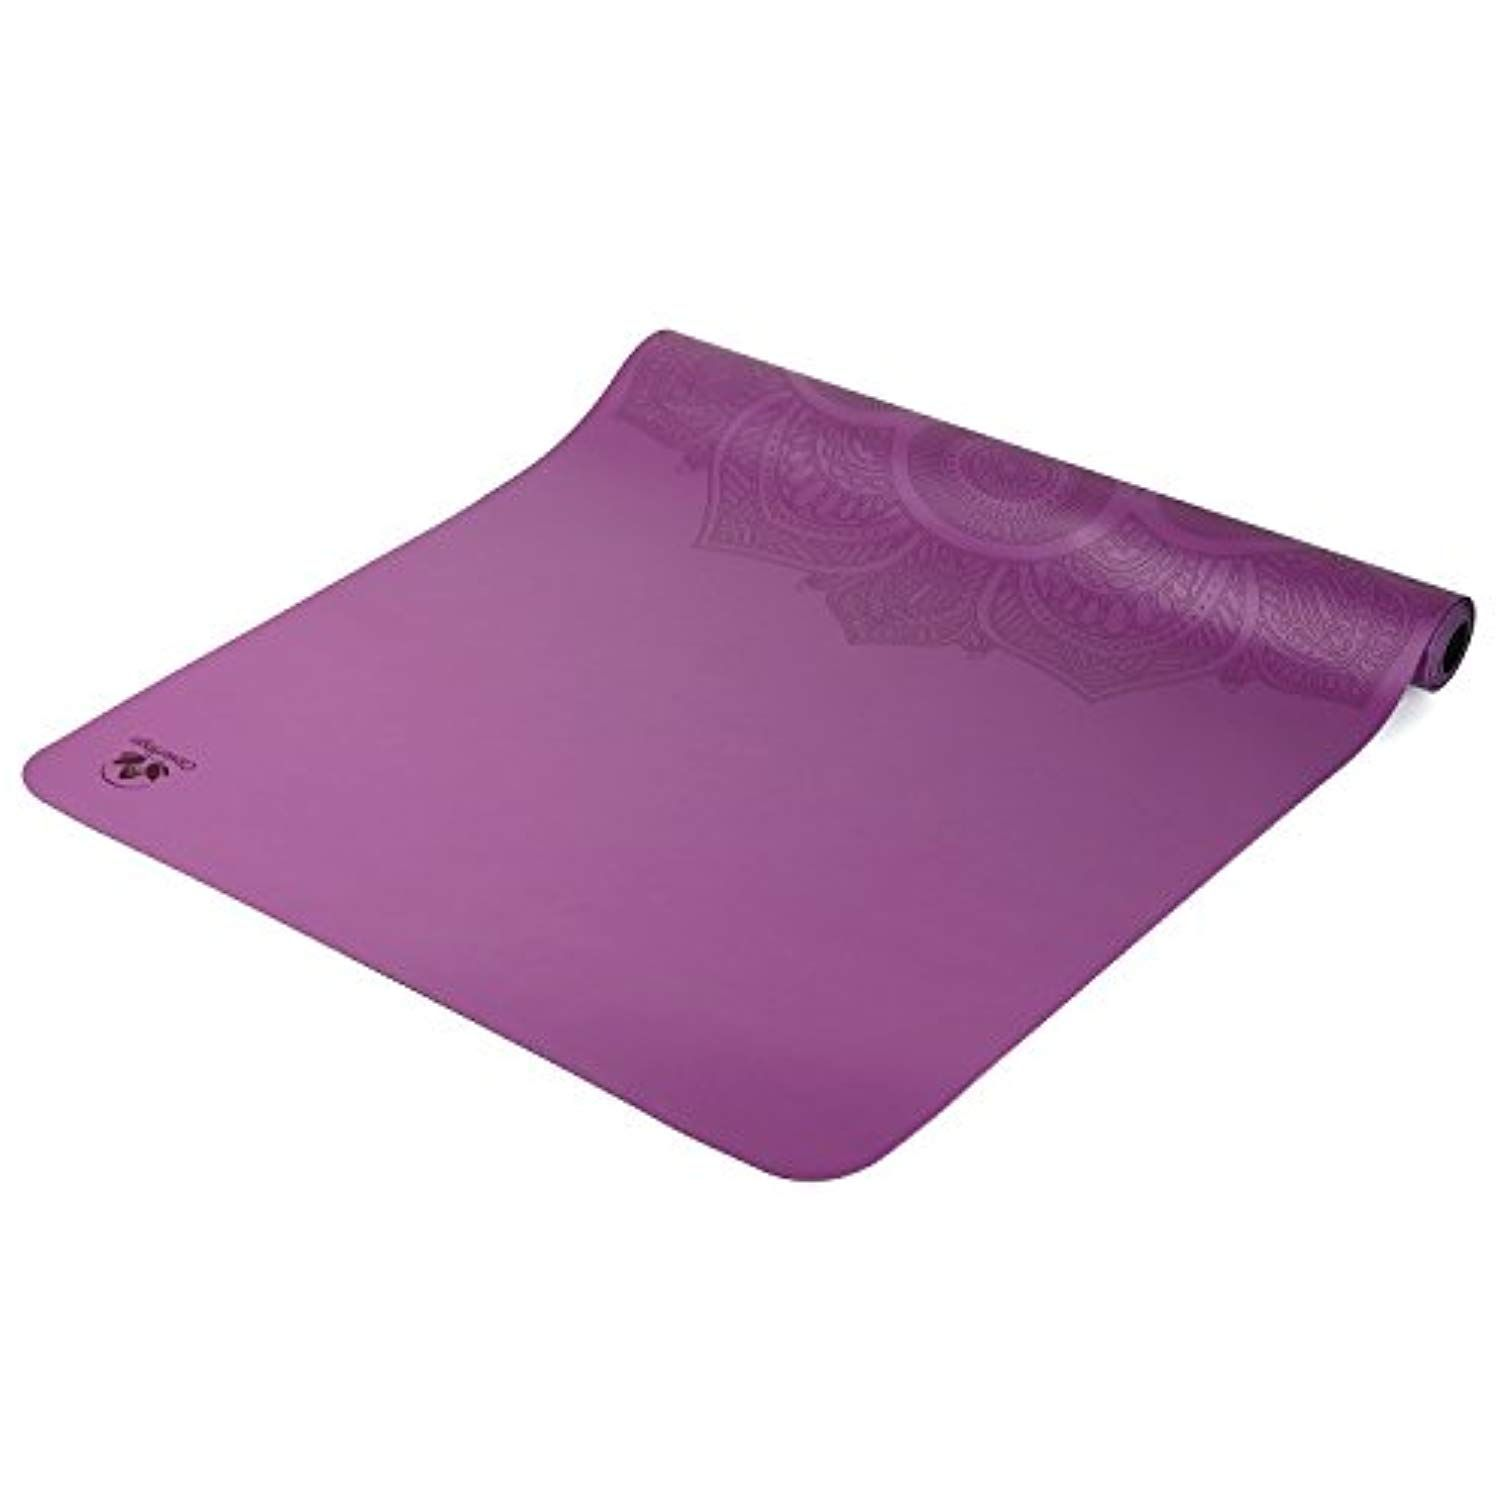 Travel Yoga Mat Lightweight Foldable And Non Slip Sticky Made From The Best Natural Rubber Ultra Thin Great For Hot Travel Yoga Mat Hot Yoga Bikram Yoga